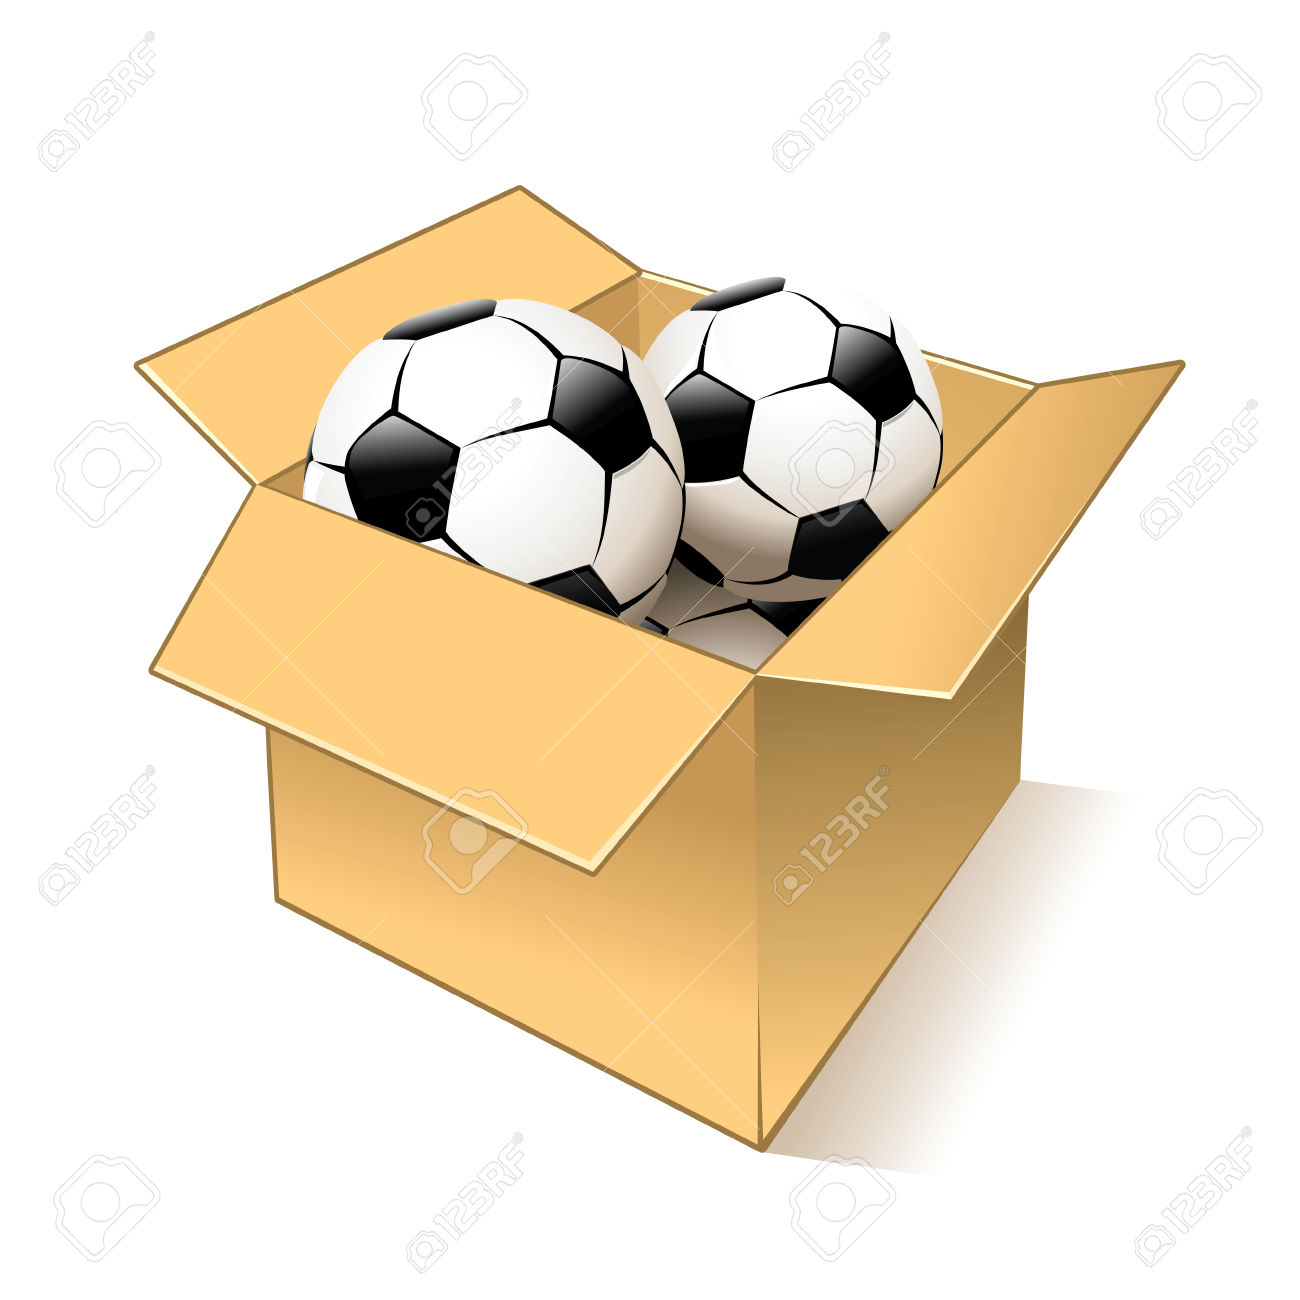 Ball in the box clipart 9 » Clipart Station royalty free